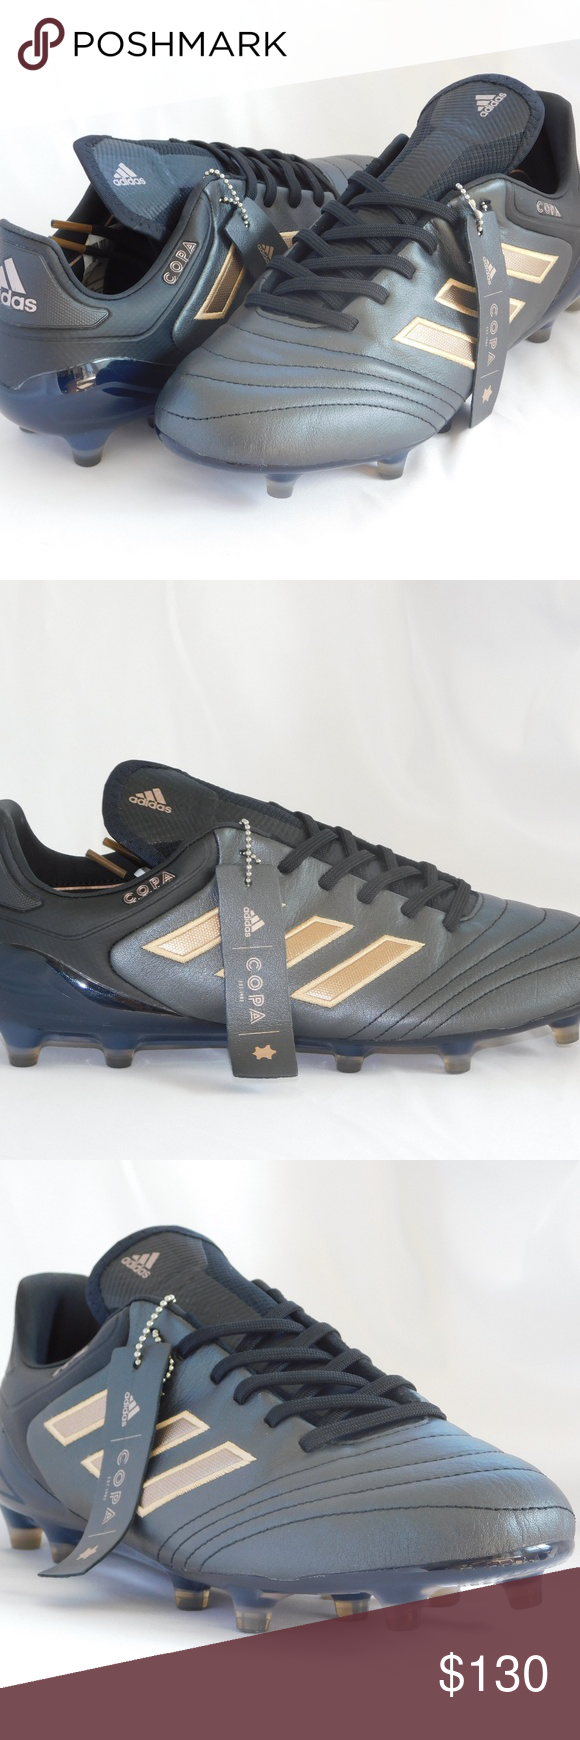 c3b356340 adidas Copa 17.1 FG Black Leather Soccer Cleats 100% Authentic Brand: Adidas  Model: